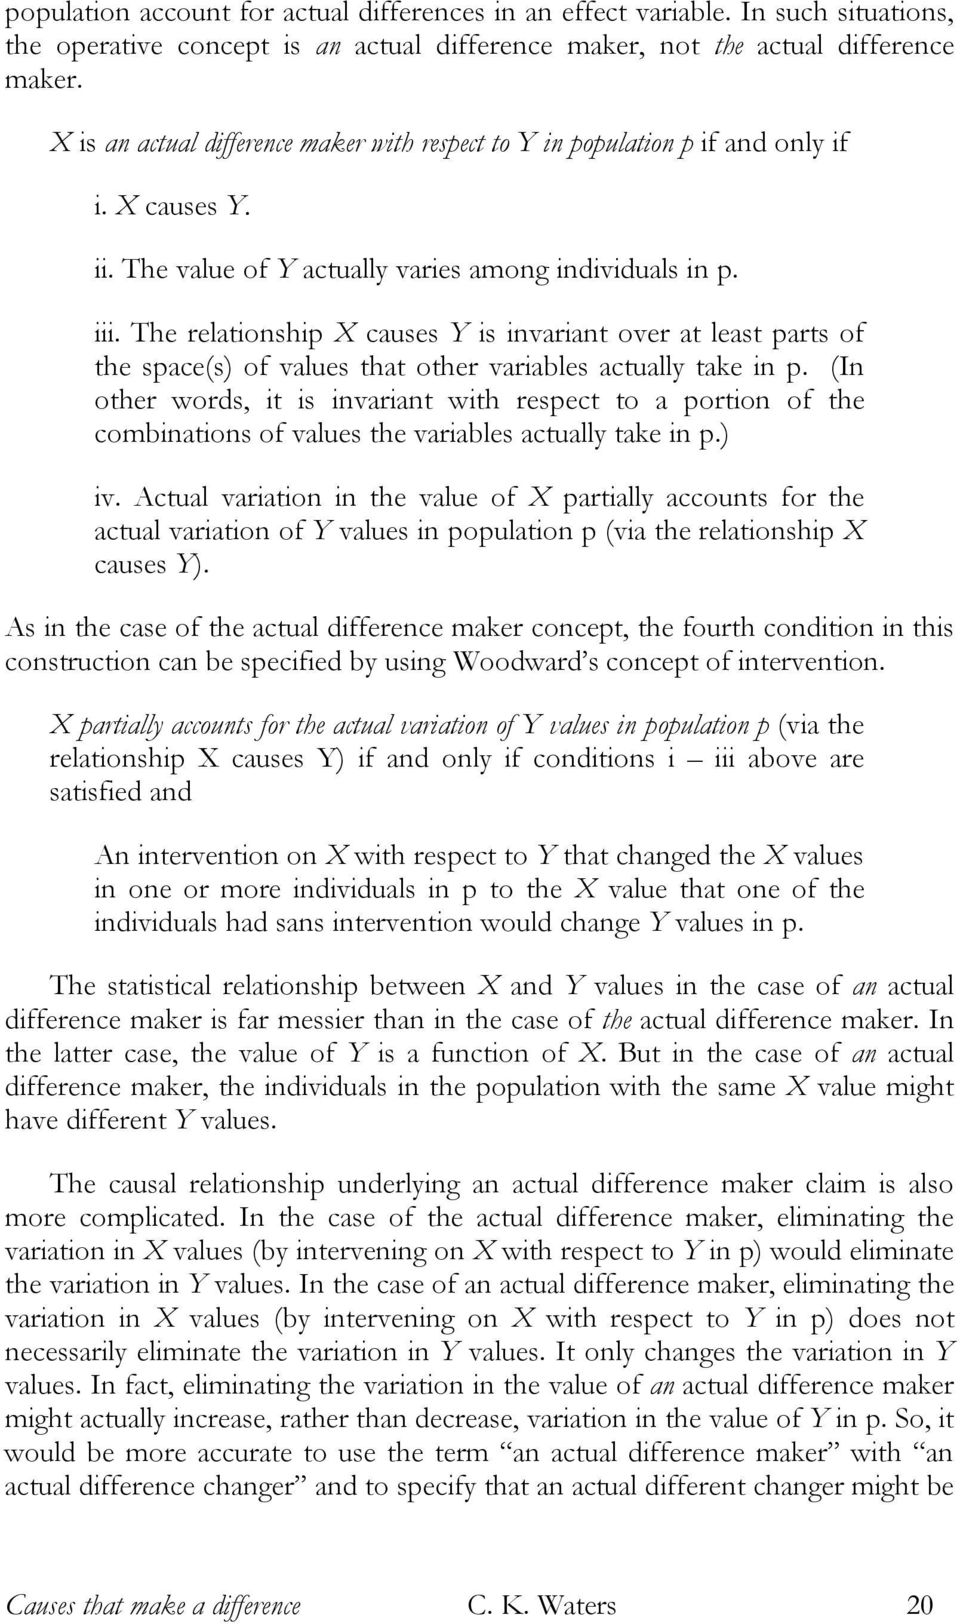 The relationship X causes Y is invariant over at least parts of the space(s) of values that other variables actually take in p.